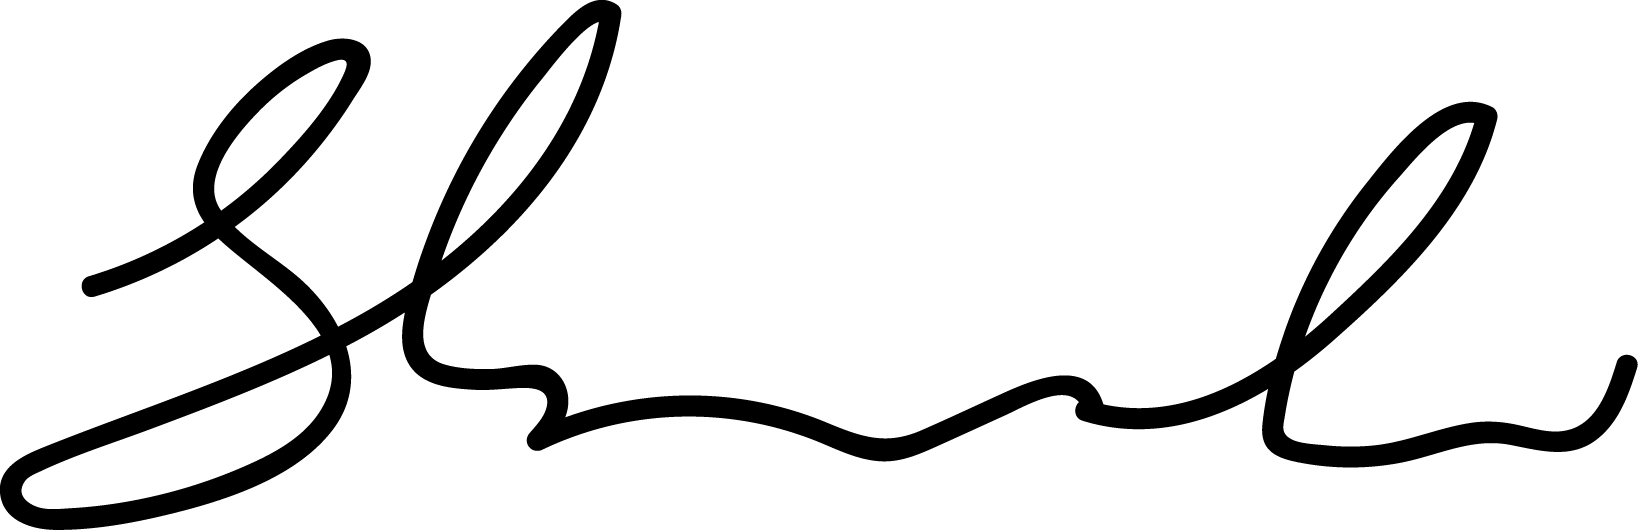 Sheila Chitizadeh's Signature